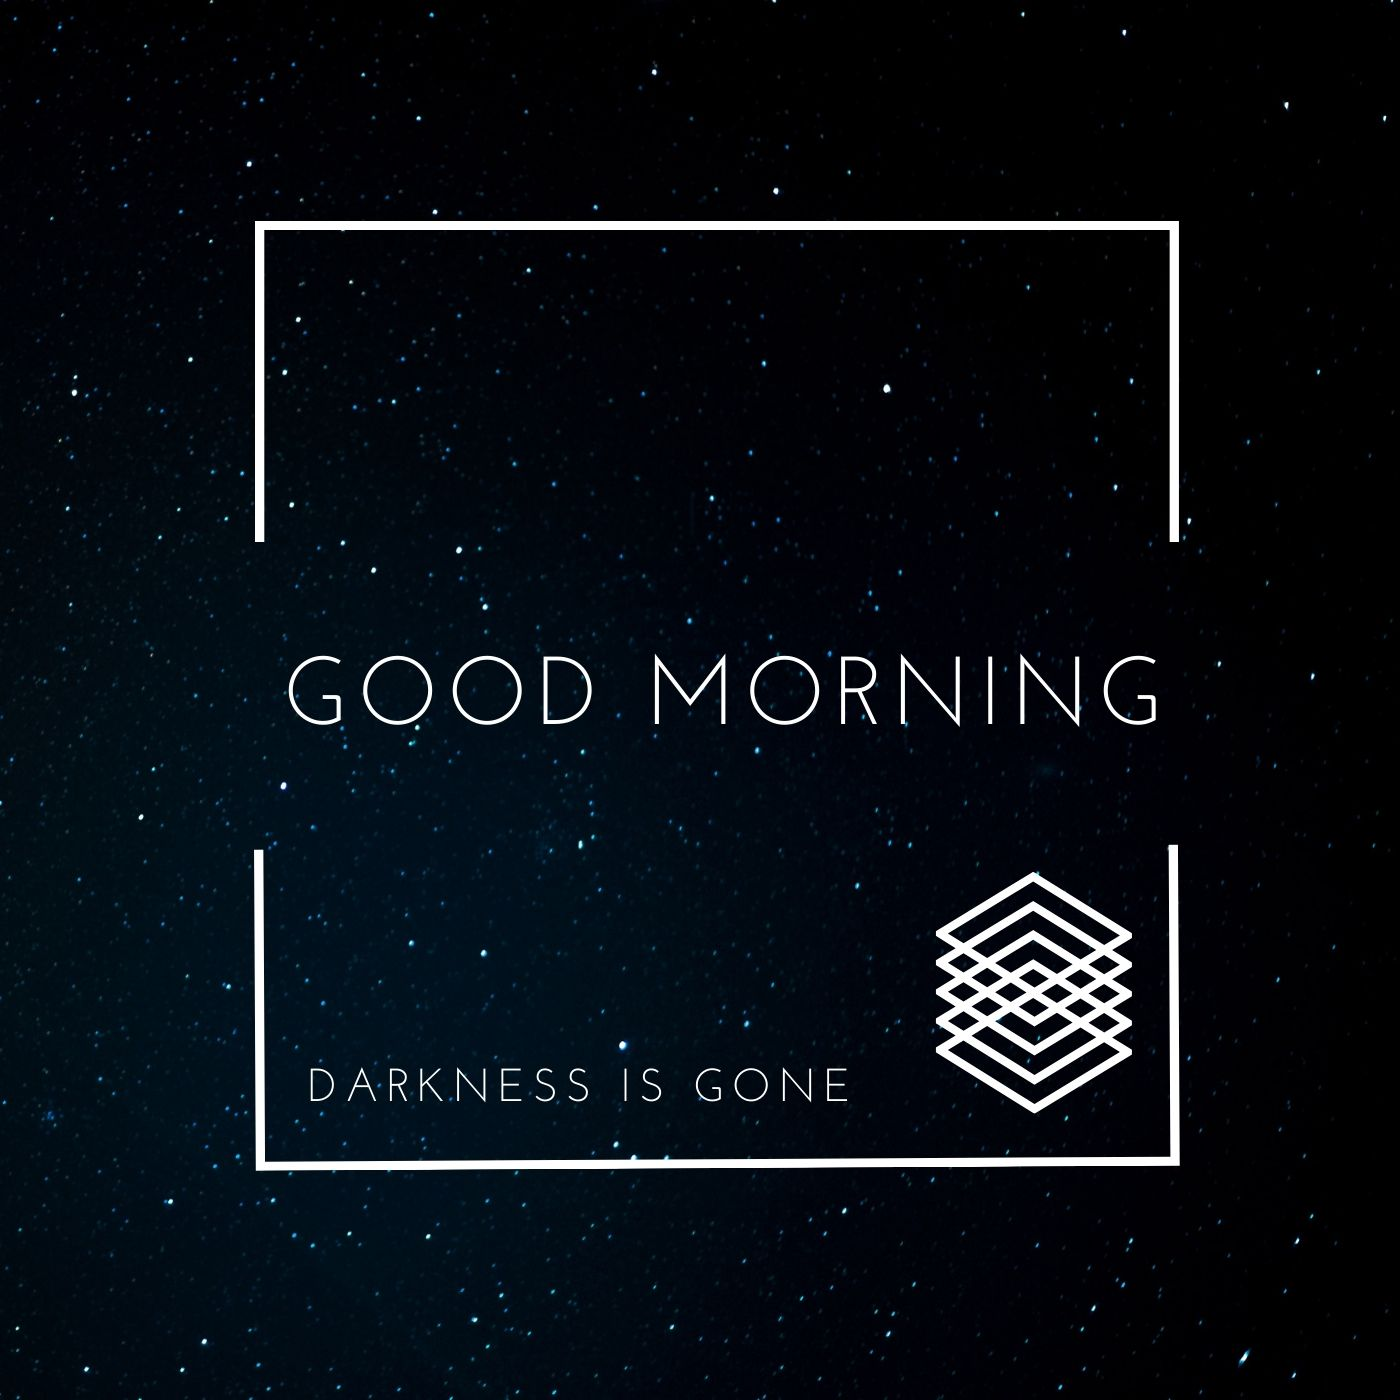 Good Morning Darkness Is Gone Image full HD free download.